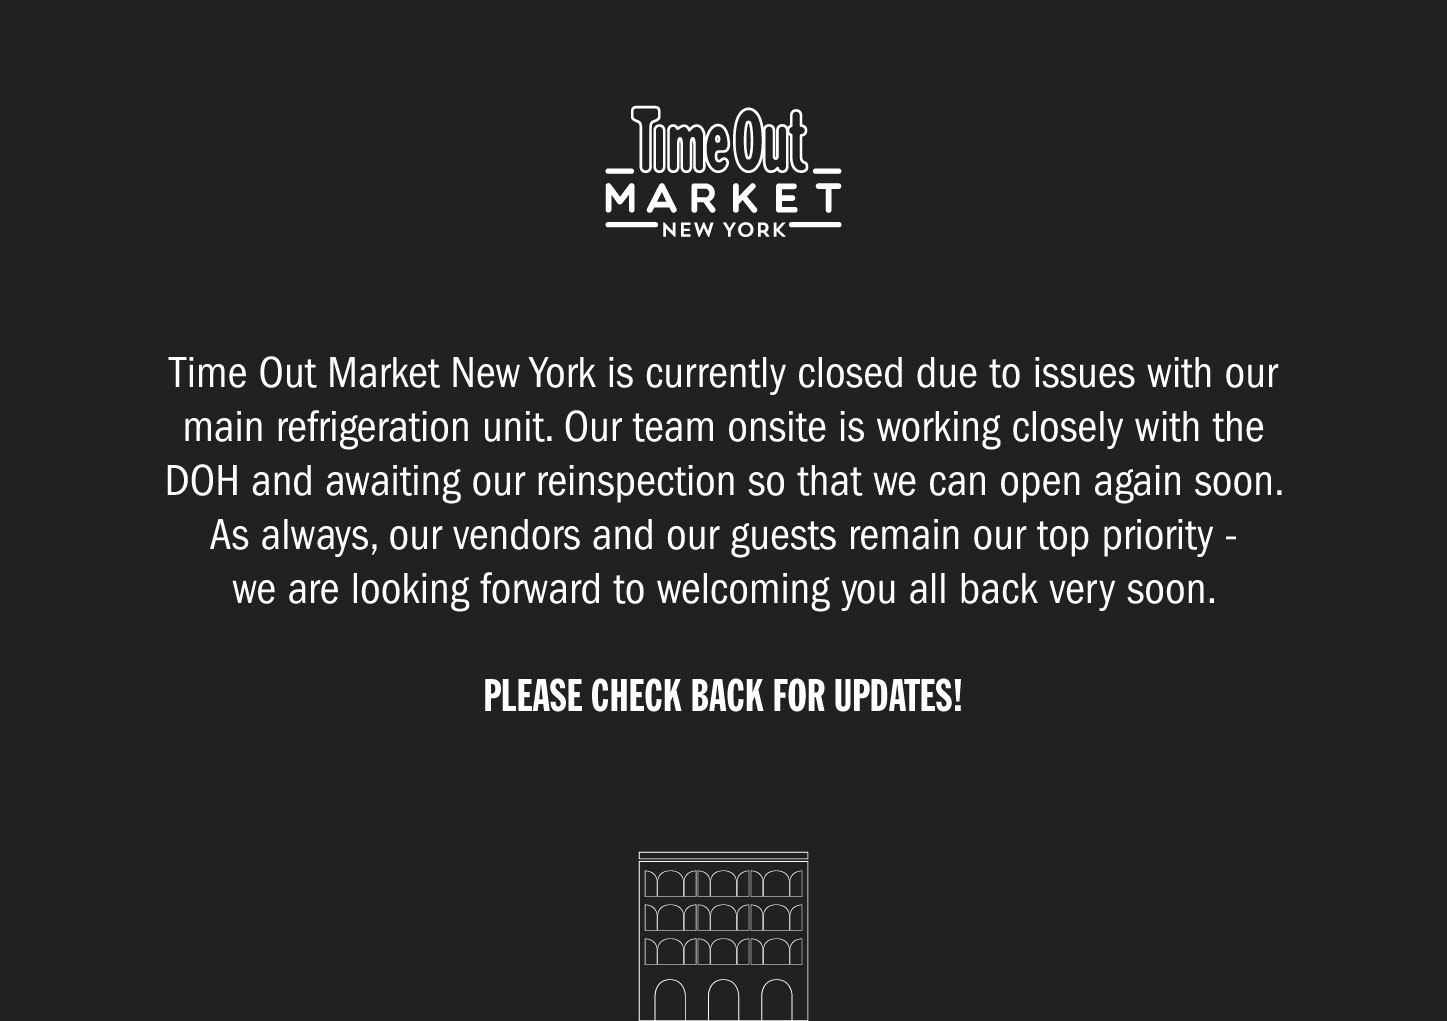 Home Time Out Market New York